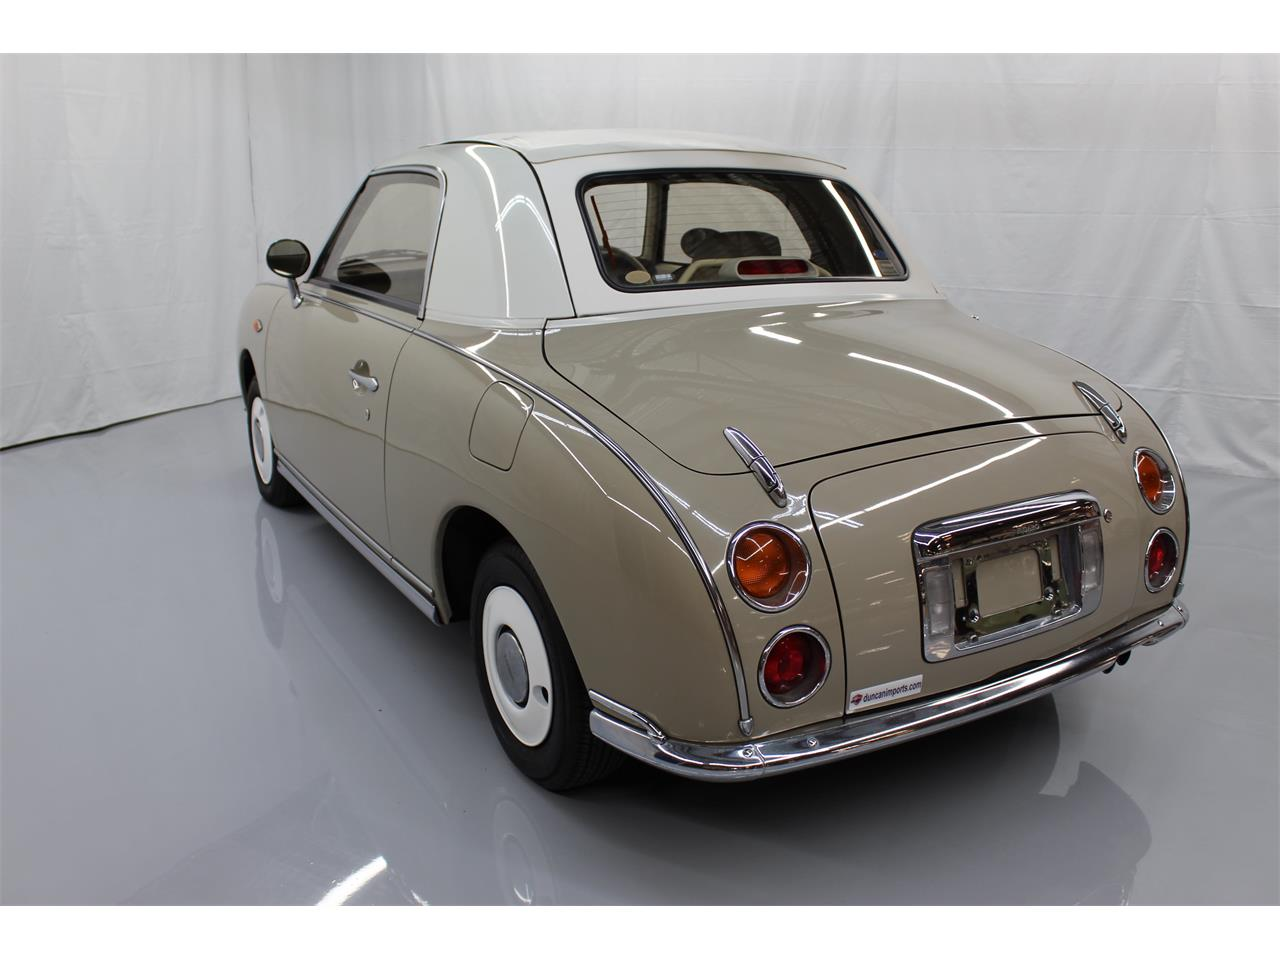 1991 Nissan Figaro for sale in Christiansburg, VA – photo 7